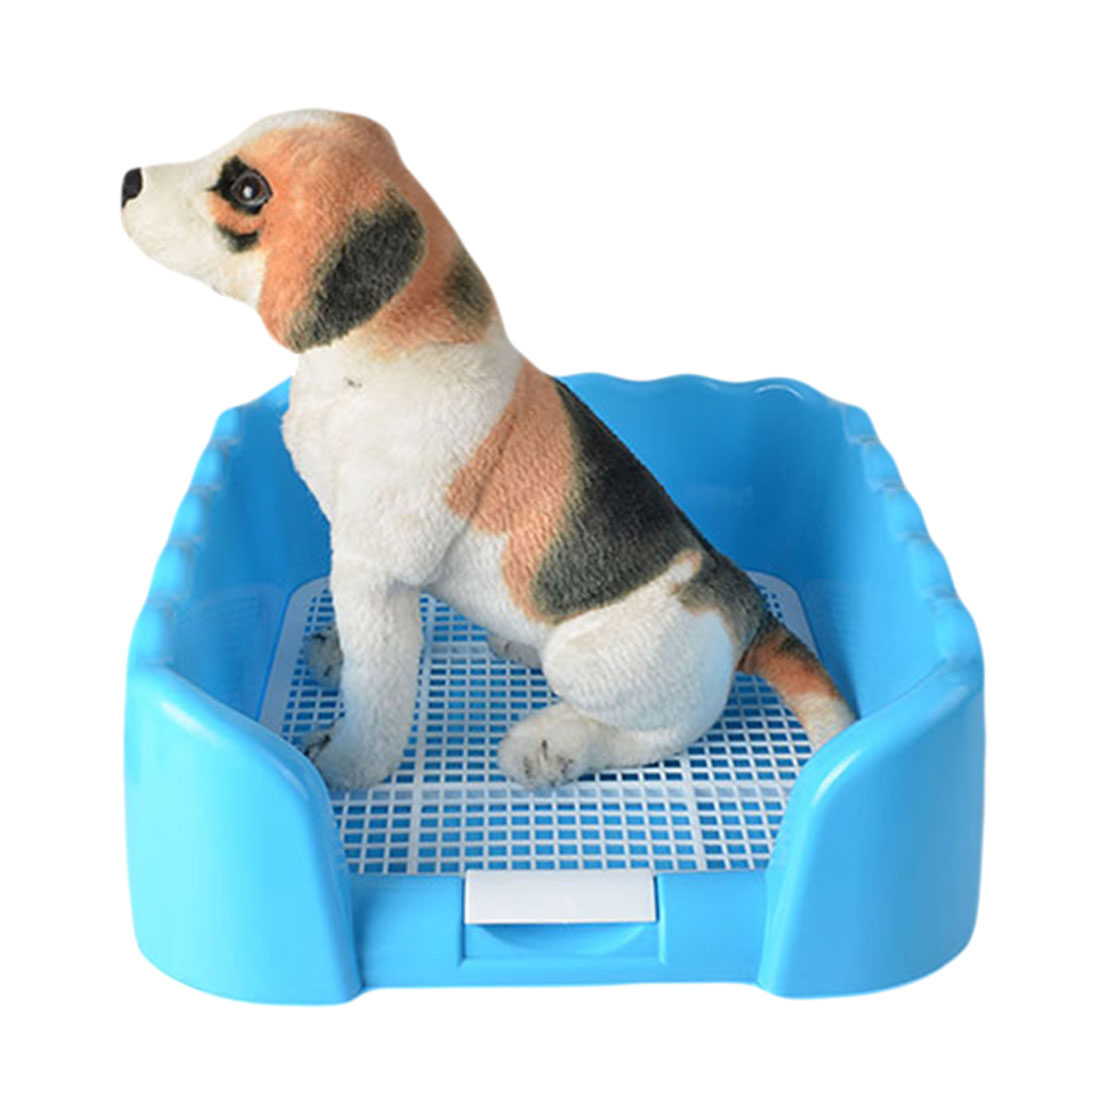 Portable Puppy Training Tray with Fence for Pet Dogs and Cats Potty and Pee Training Indoor 15